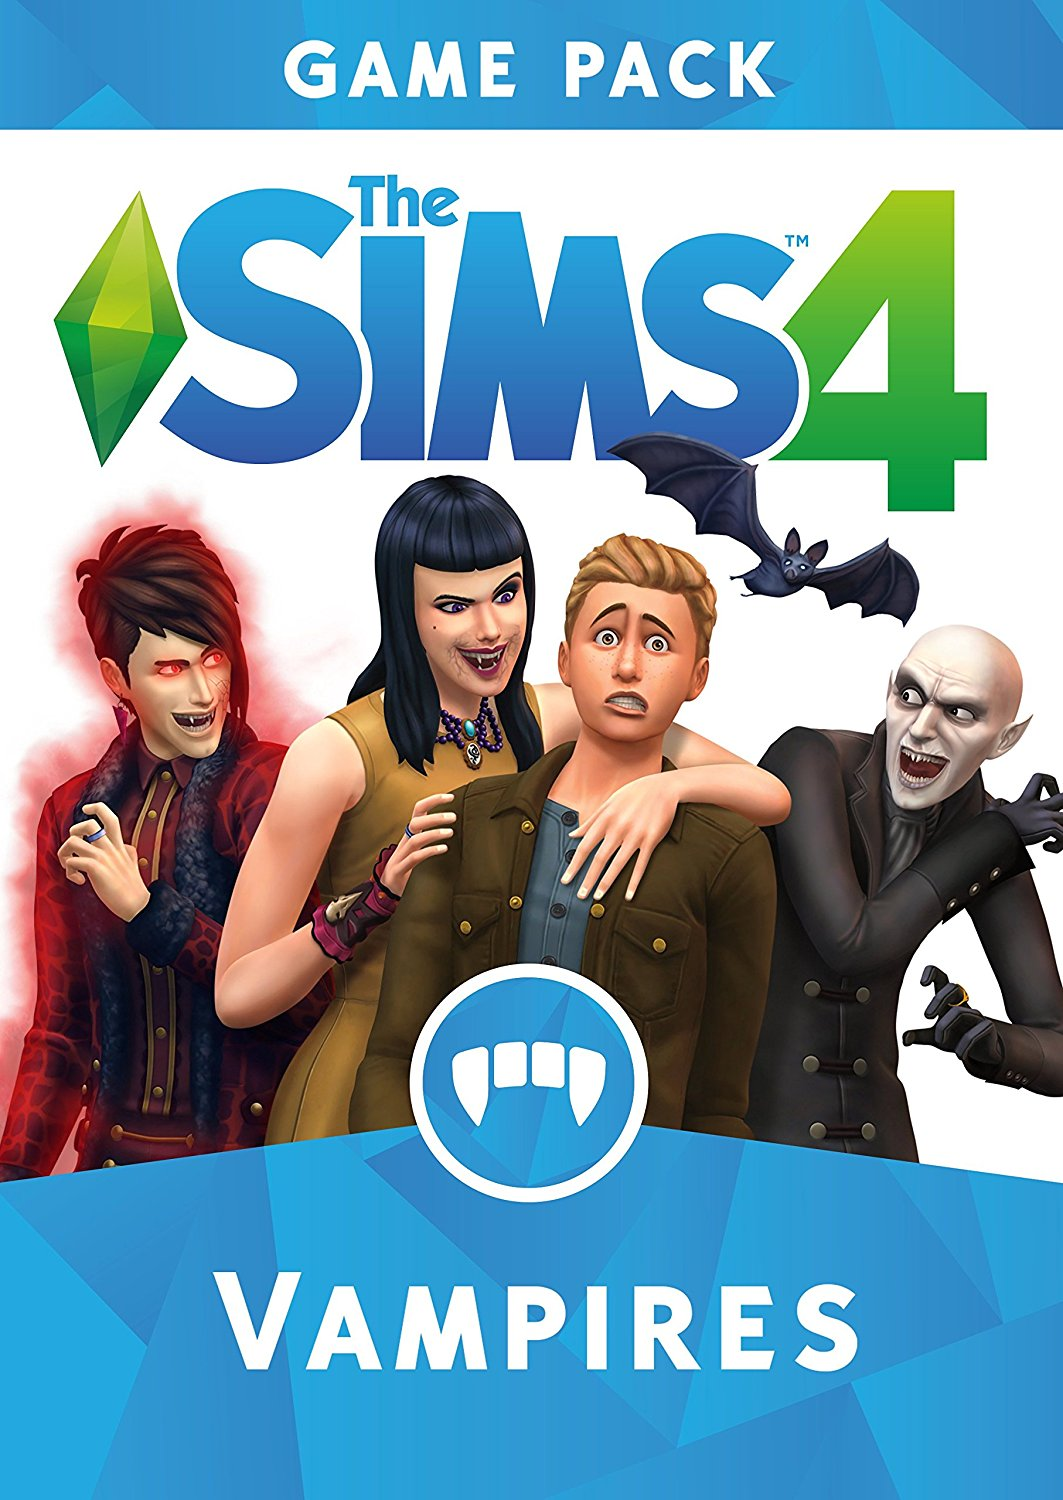 http://img5.downloadha.com/hosein/Game/May%202017/14/The-Sims-4-Vampires-Add-on-pc-cover-large.jpg